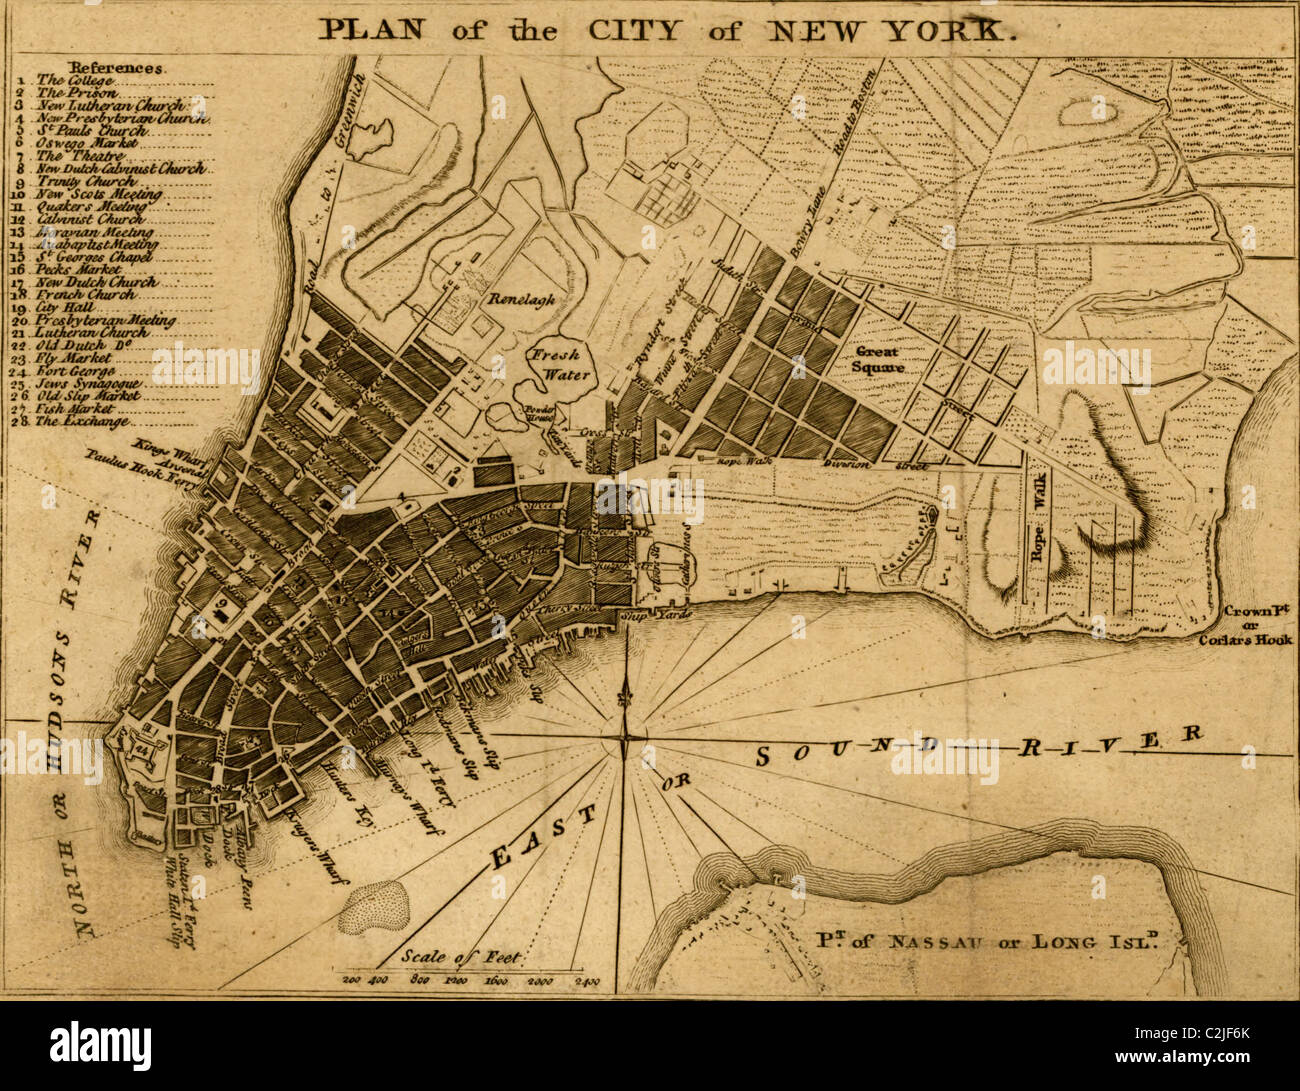 Map With Streets Stock Photos   Map With Streets Stock Images   Alamy New York City map shows streets  wharves  ferries  principal buildings  and  built